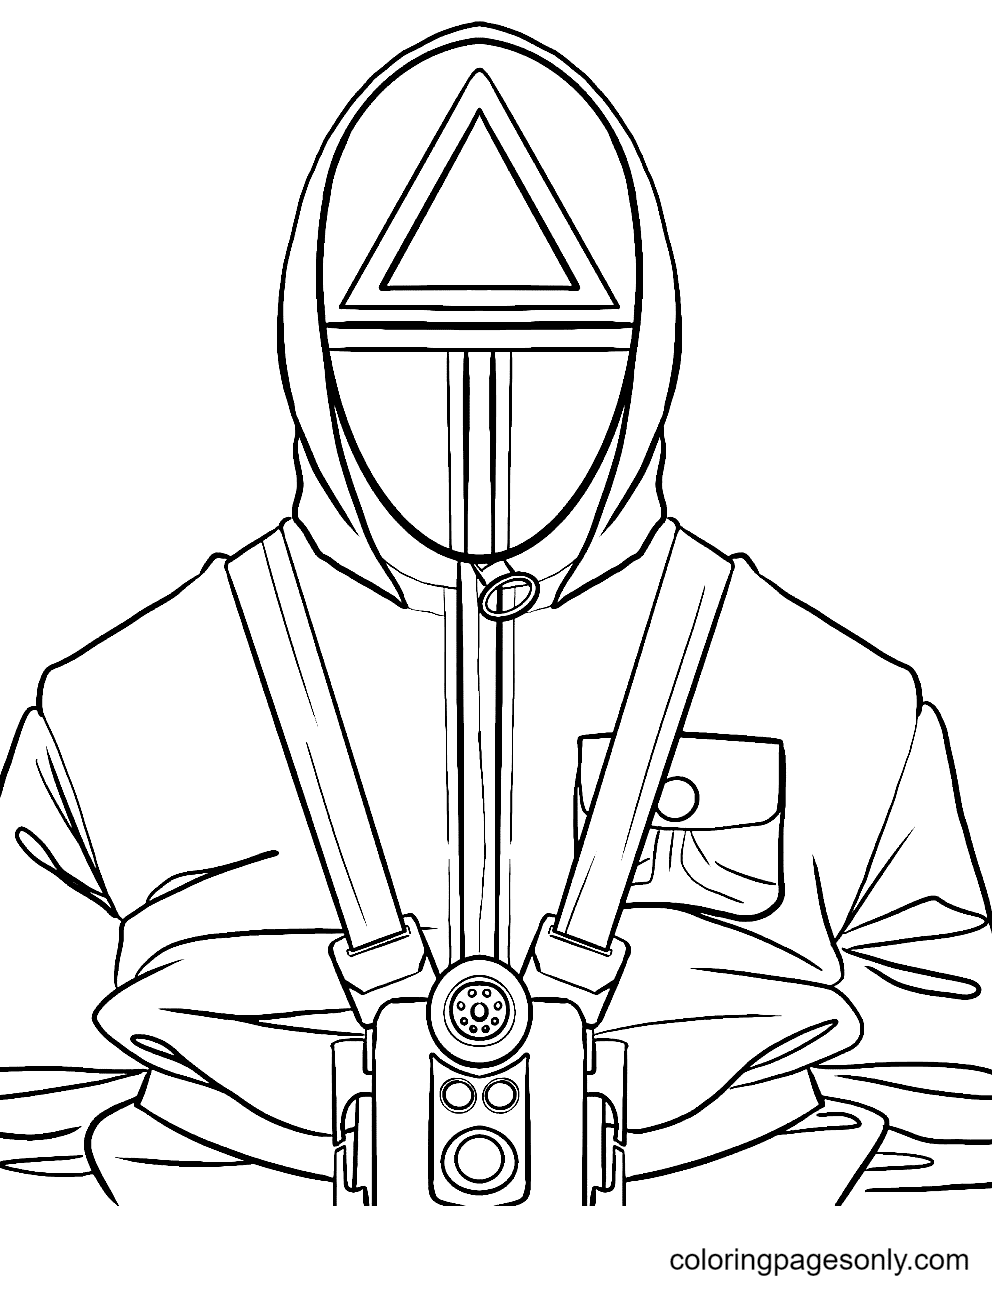 Free Squid Game Printable Coloring Page